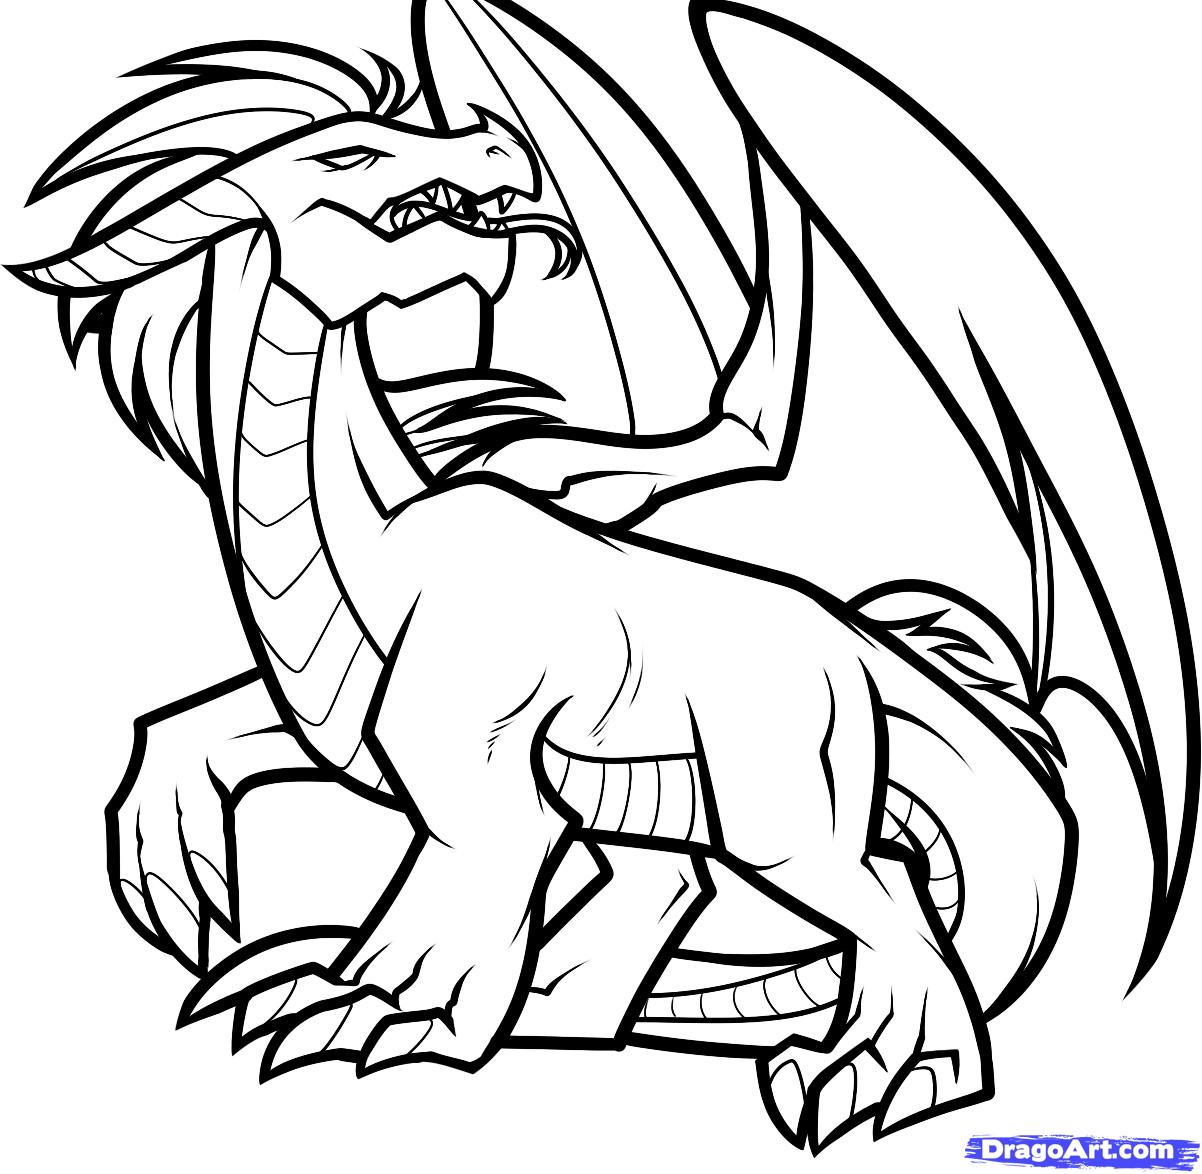 1202x1174 Dragon Outlines For Drawing